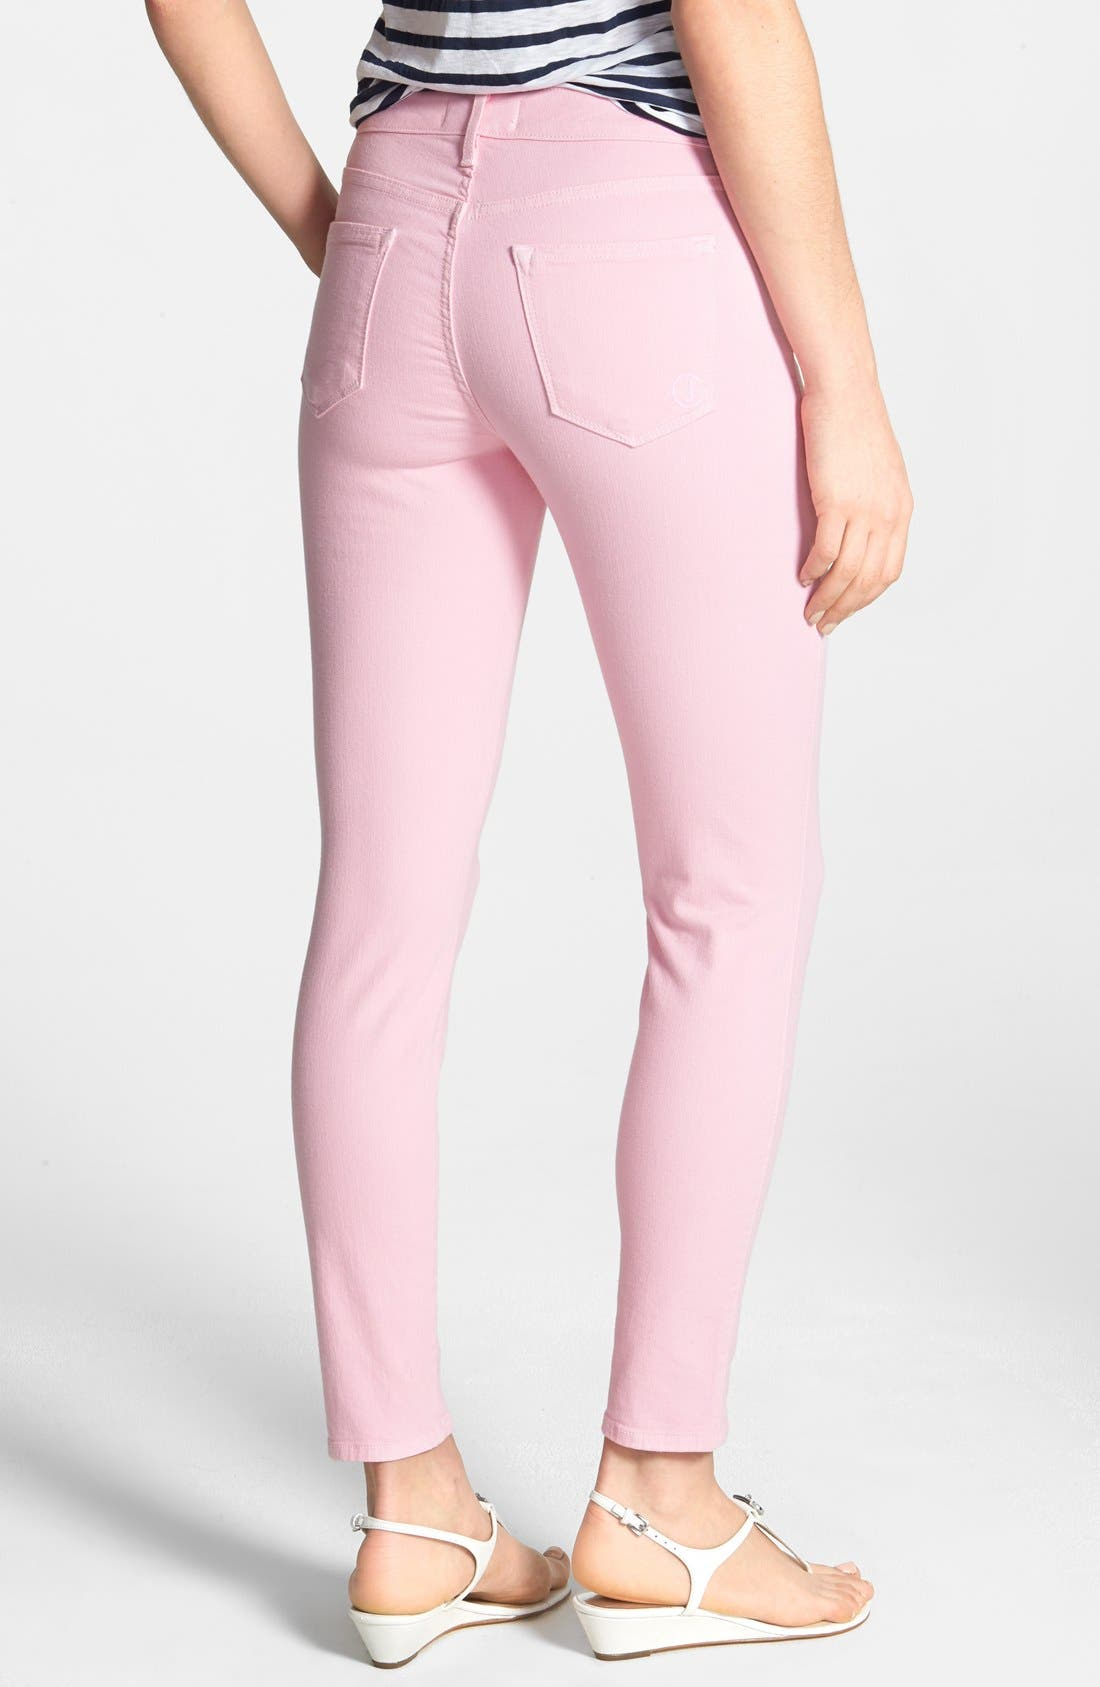 CJ BY COOKIE JOHNSON, 'Wisdom' Colored Ankle Skinny Jeans, Alternate thumbnail 2, color, 650